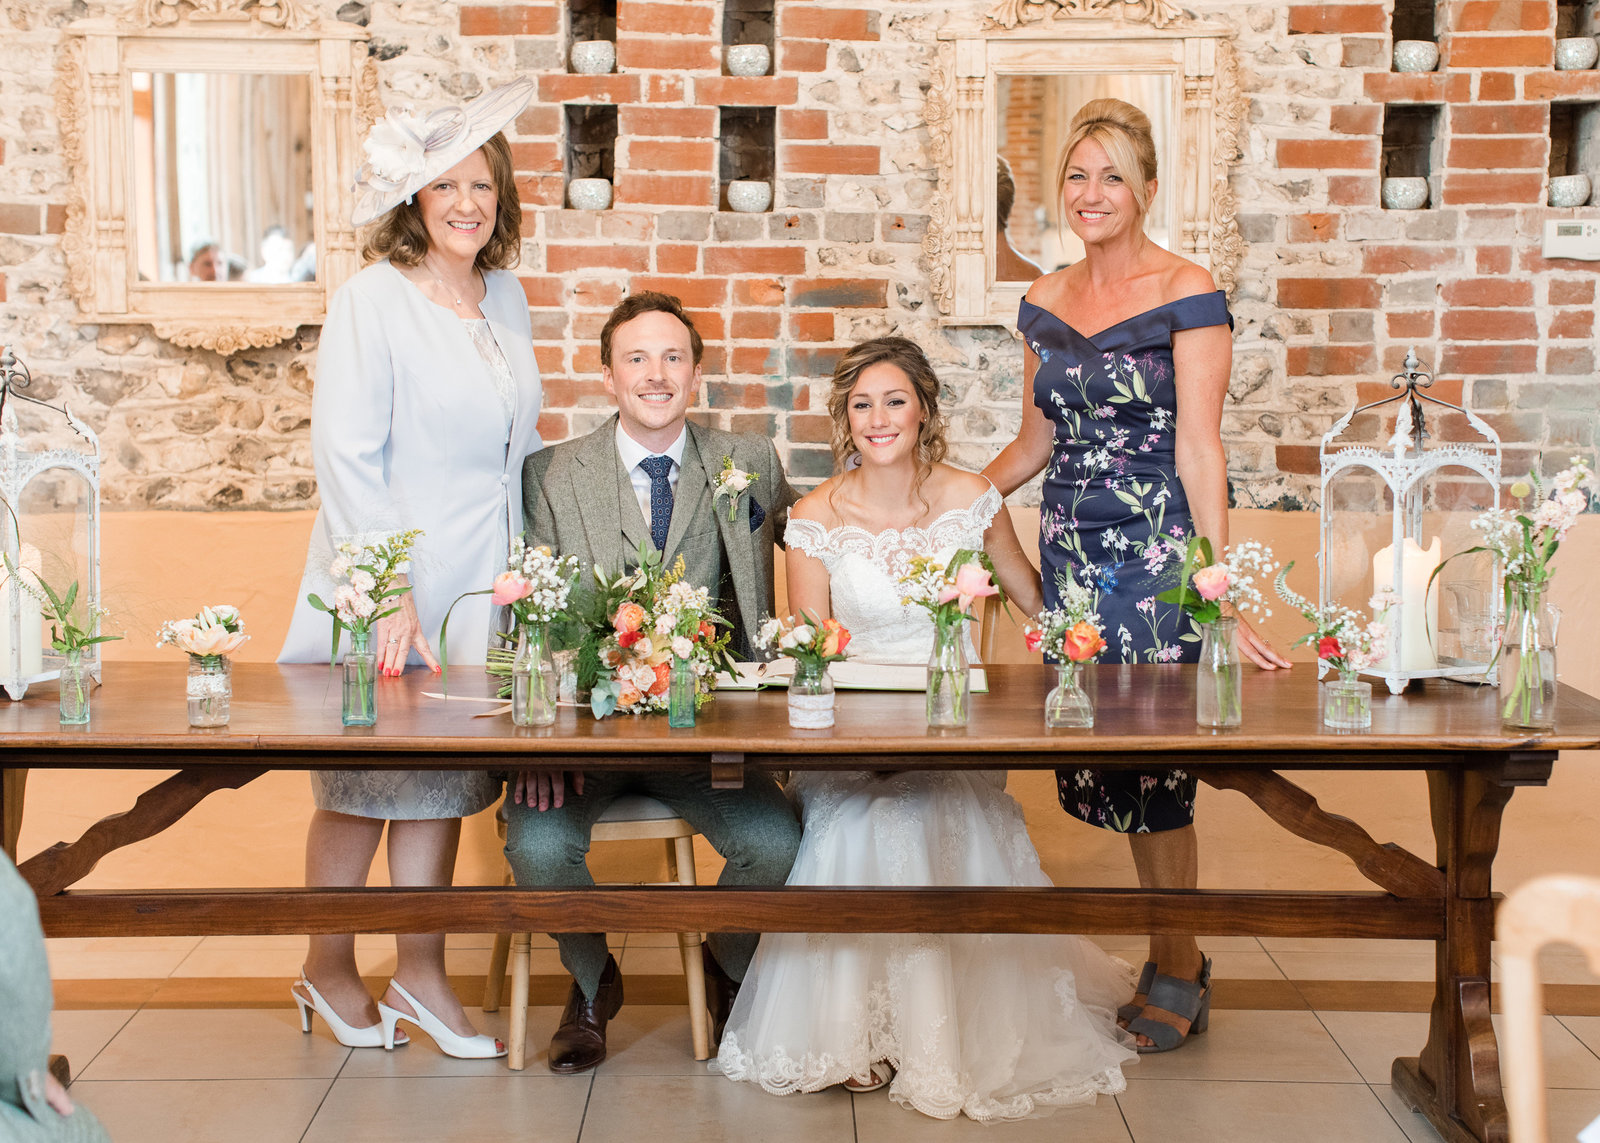 adorlee-049-KA-upwaltham-barns-wedding-photographer